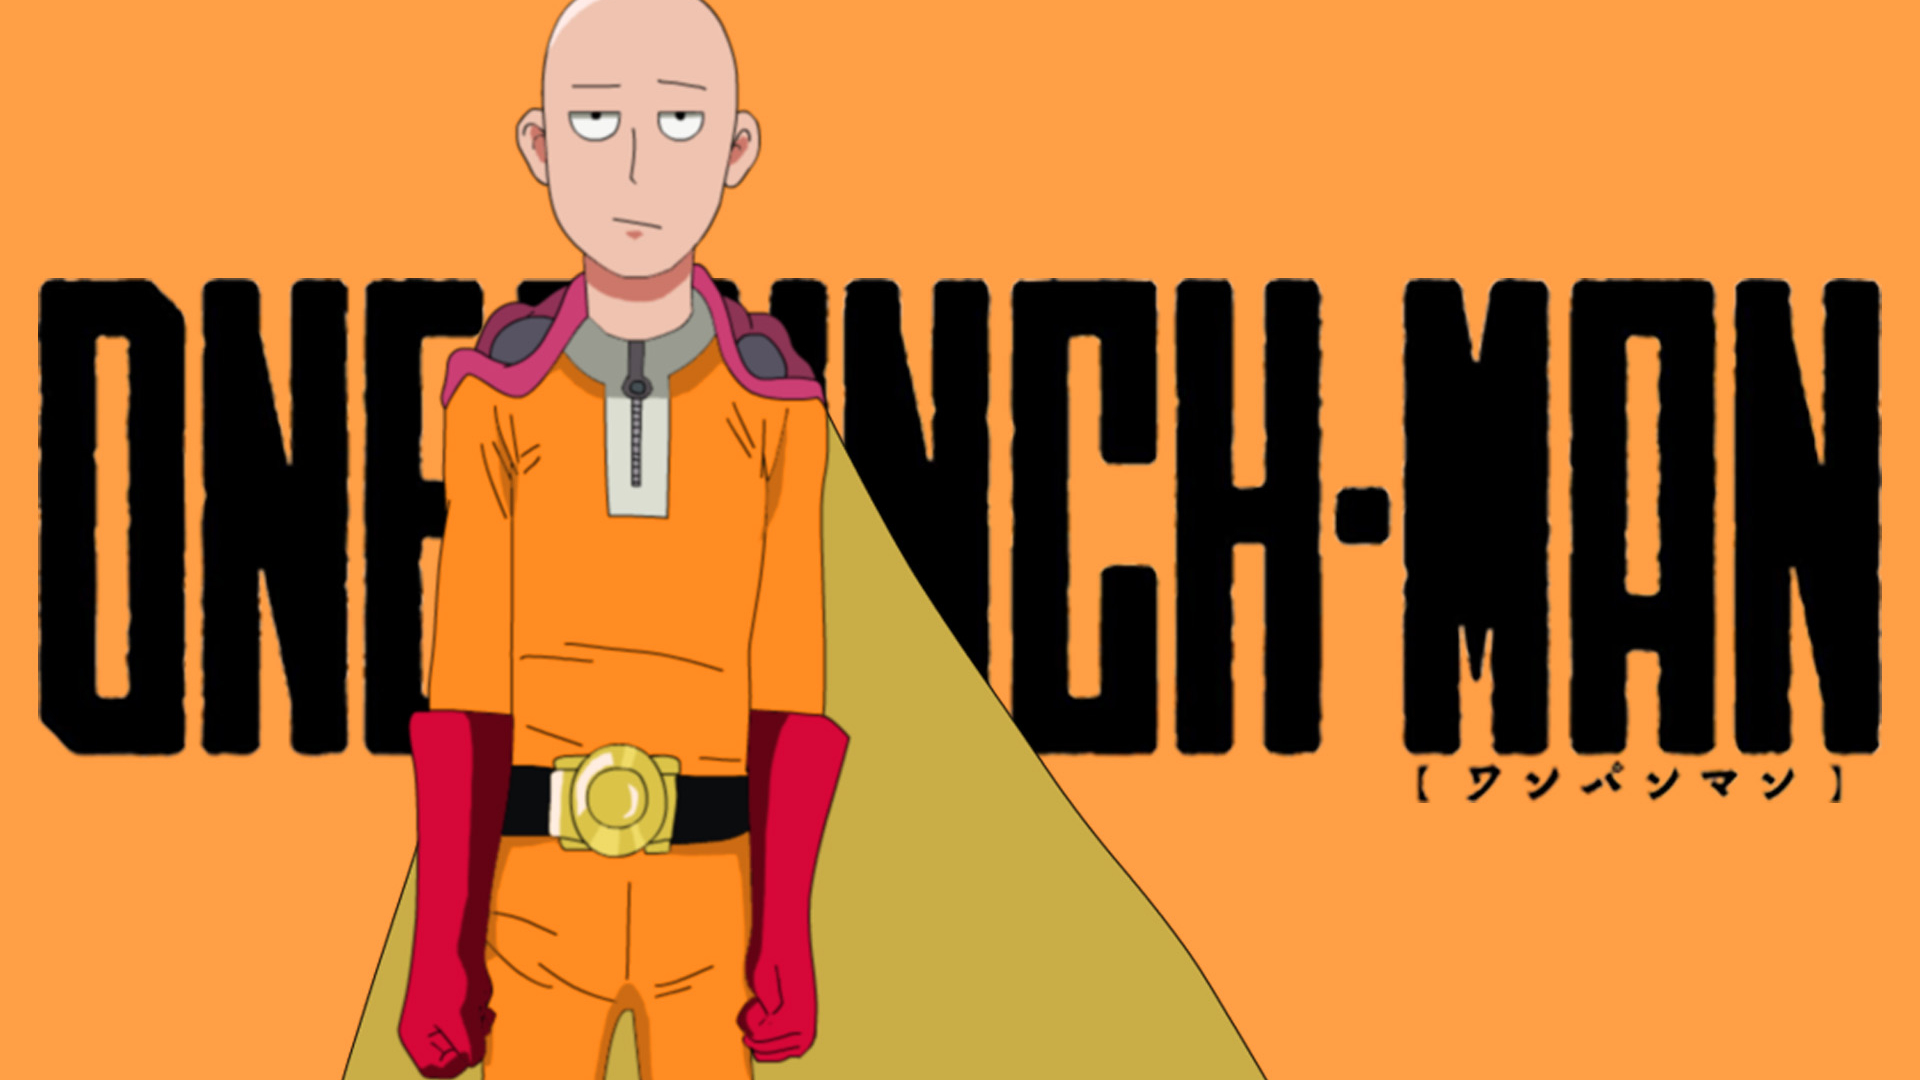 Free Download One Punch Man Hd Anime Wallpaper 1920x1200 For